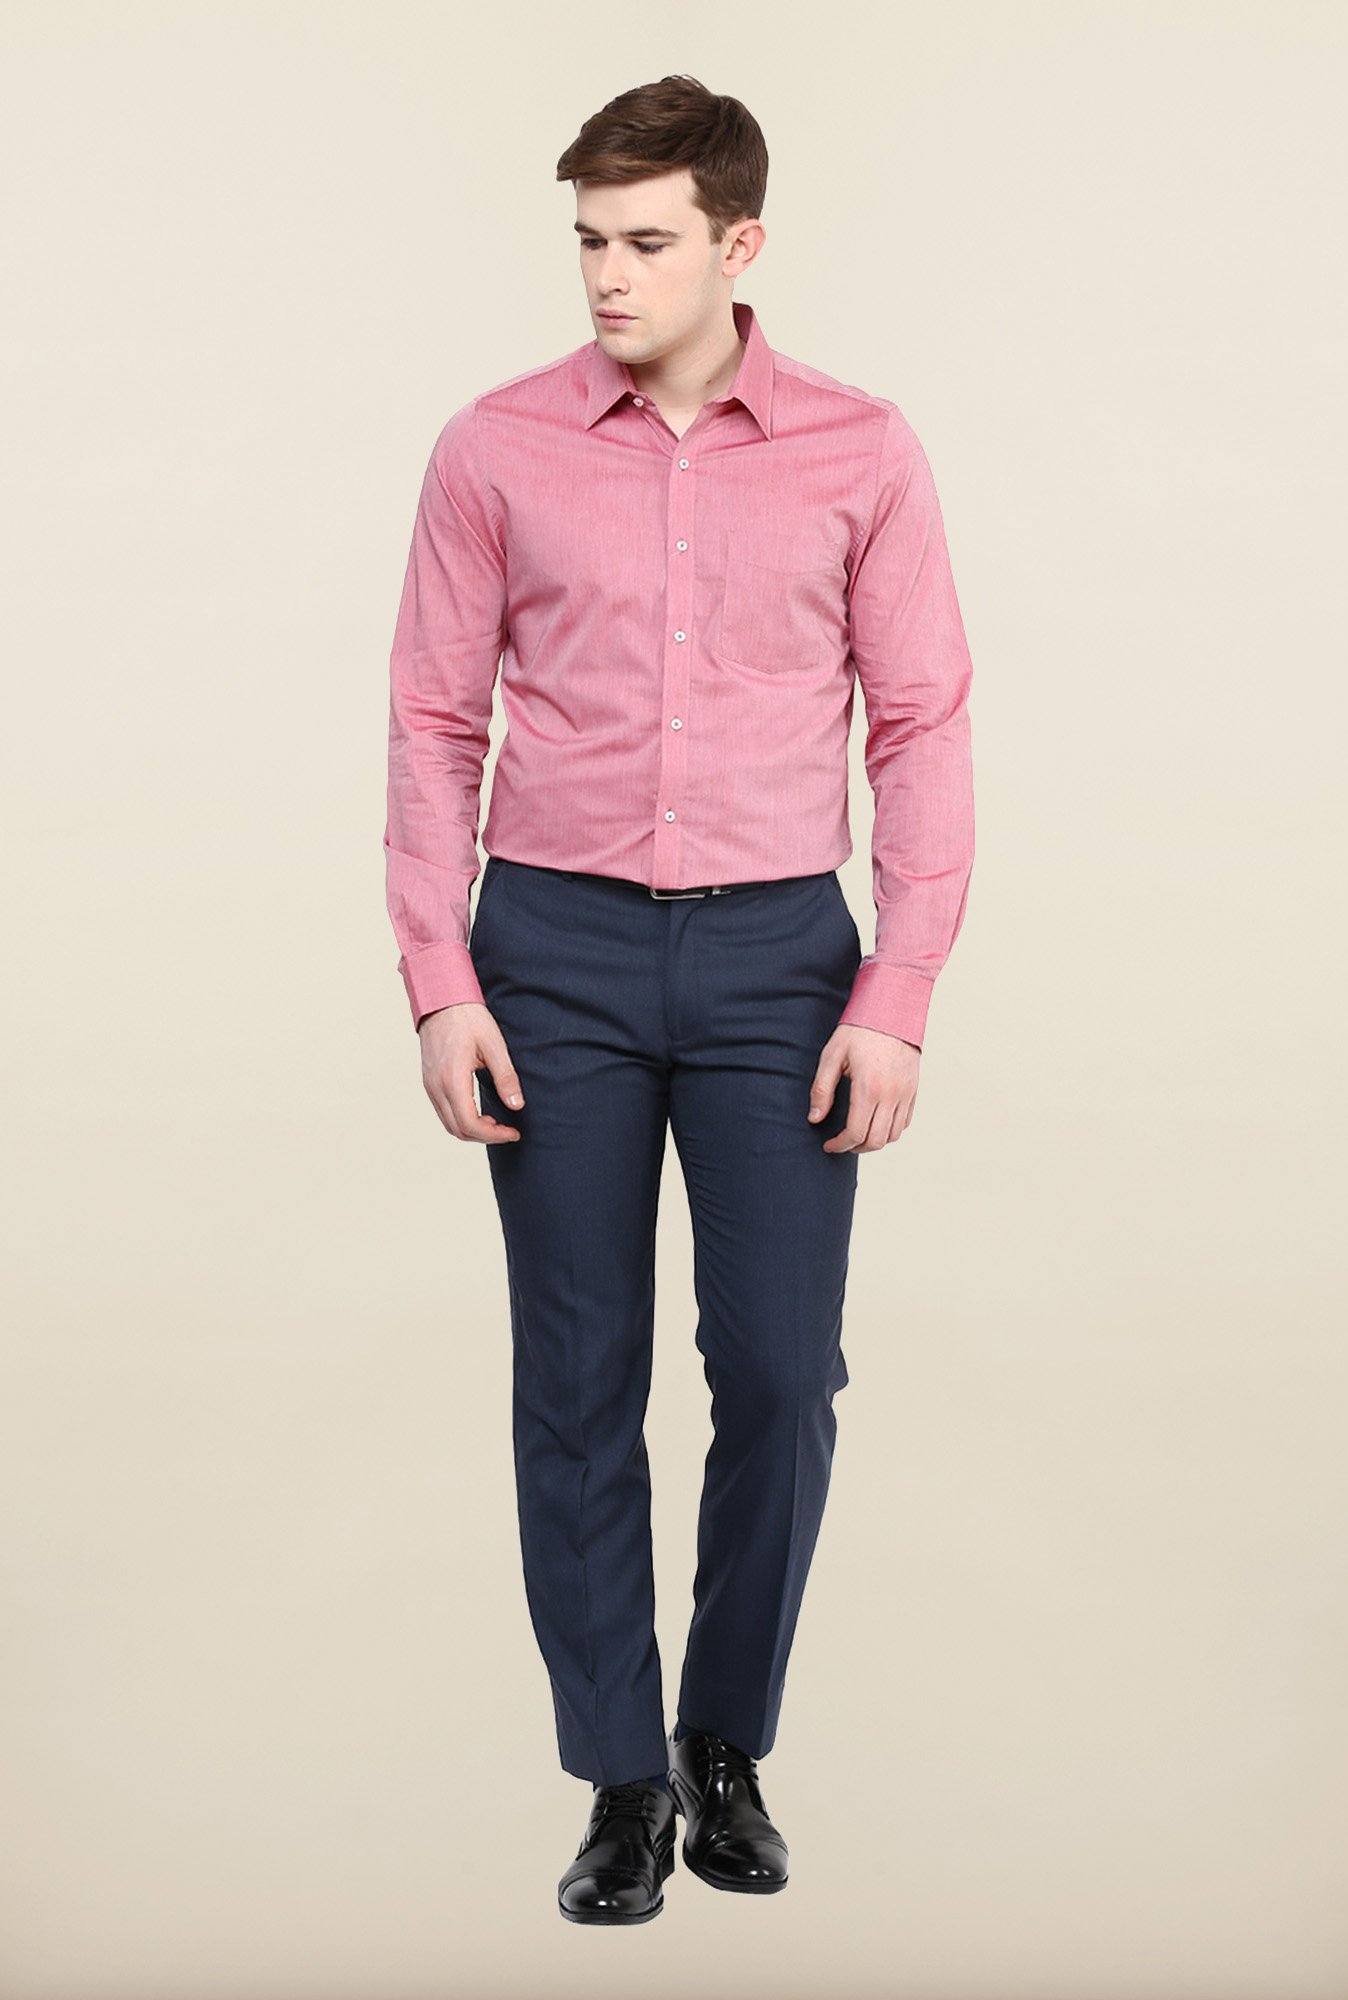 Turtle Pink Solid Formal Shirt